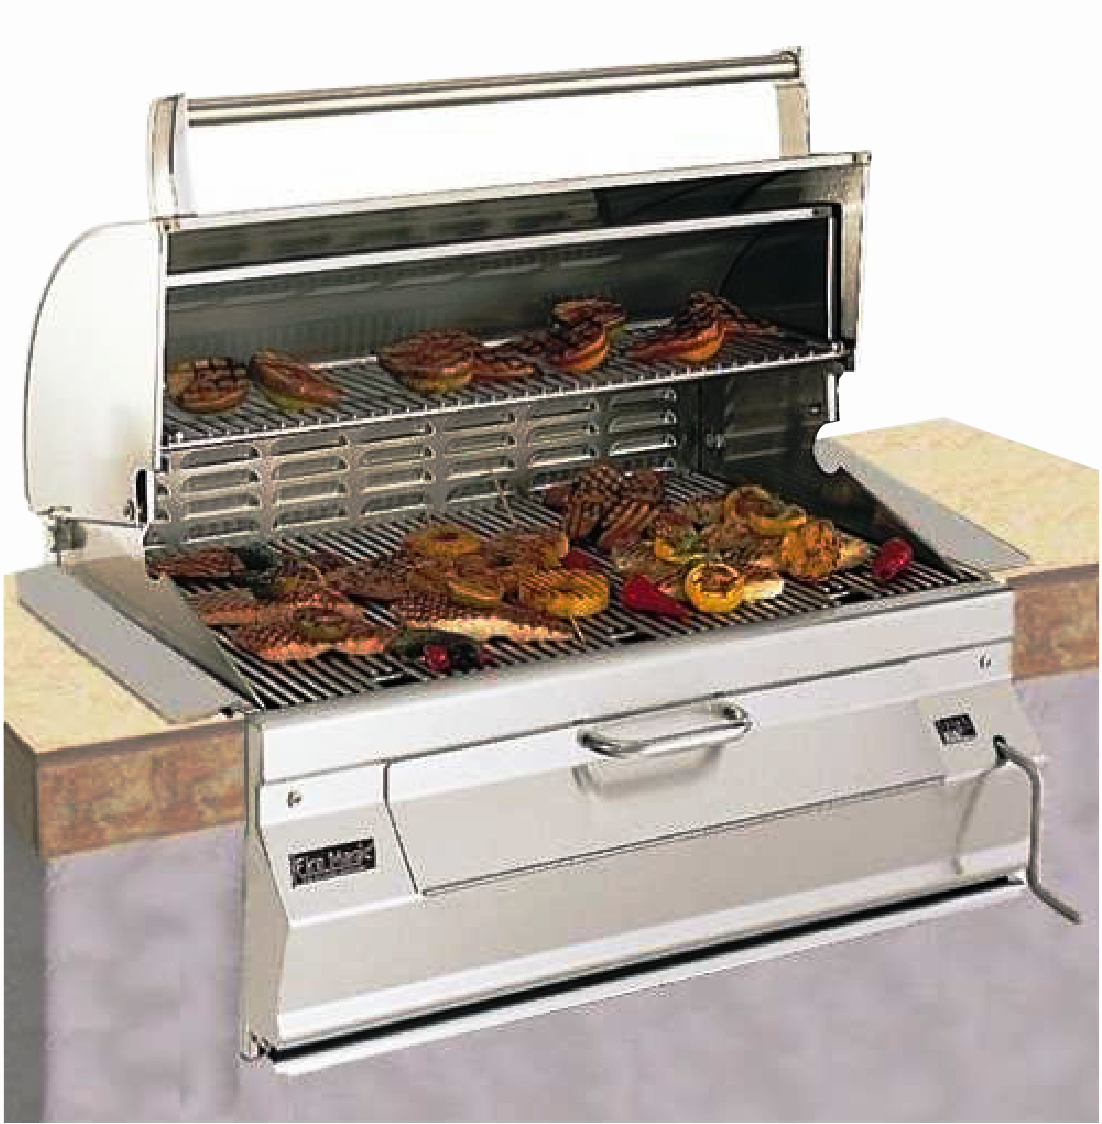 Fire magic built in charcoal grill 12-S101C-A 24 inch